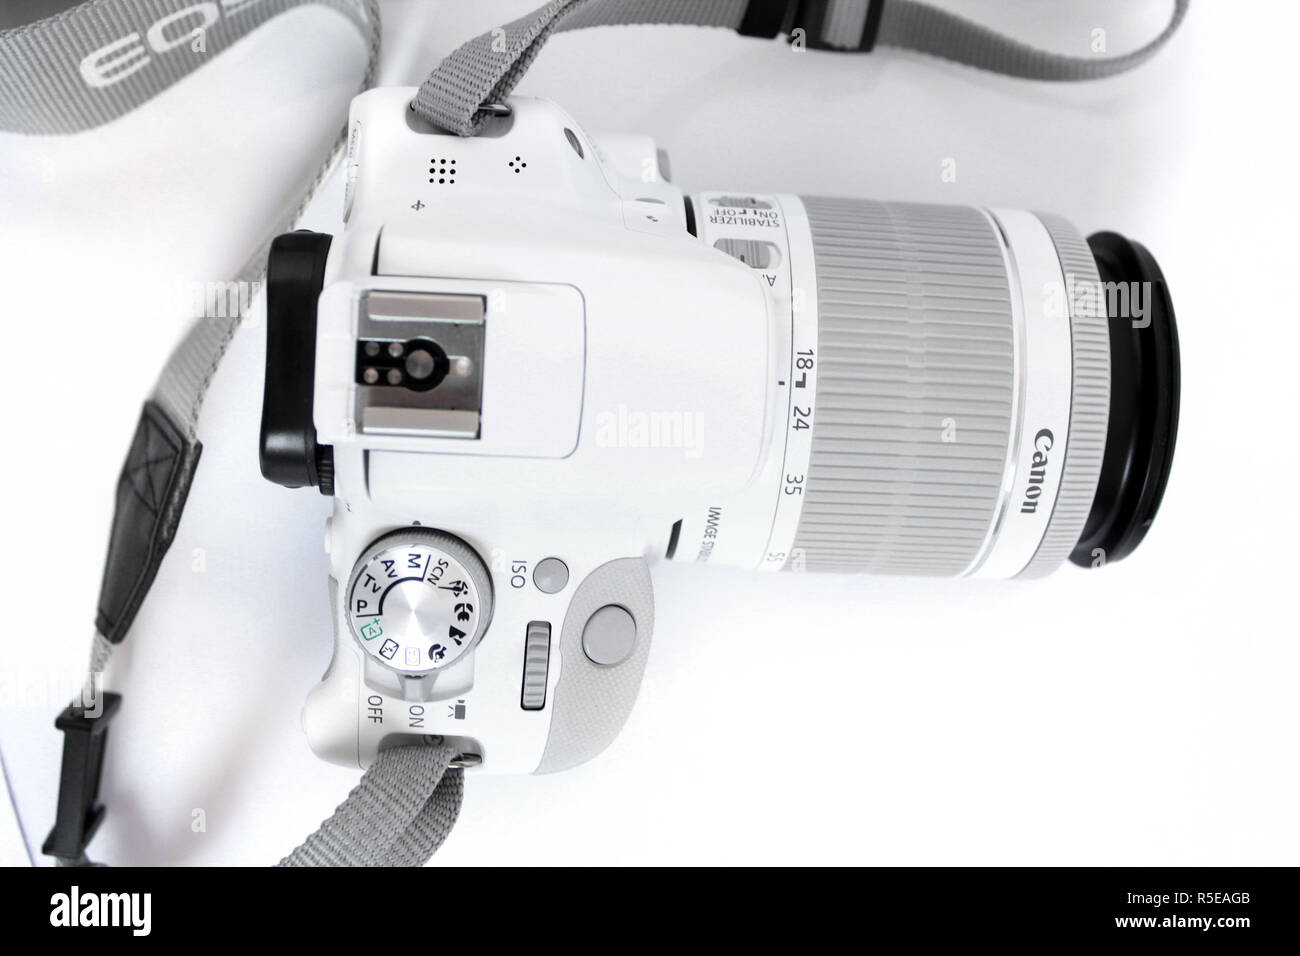 Camera Canon 100d eos, lens efs 18-55mm, editorial, illustrative - Stock Image